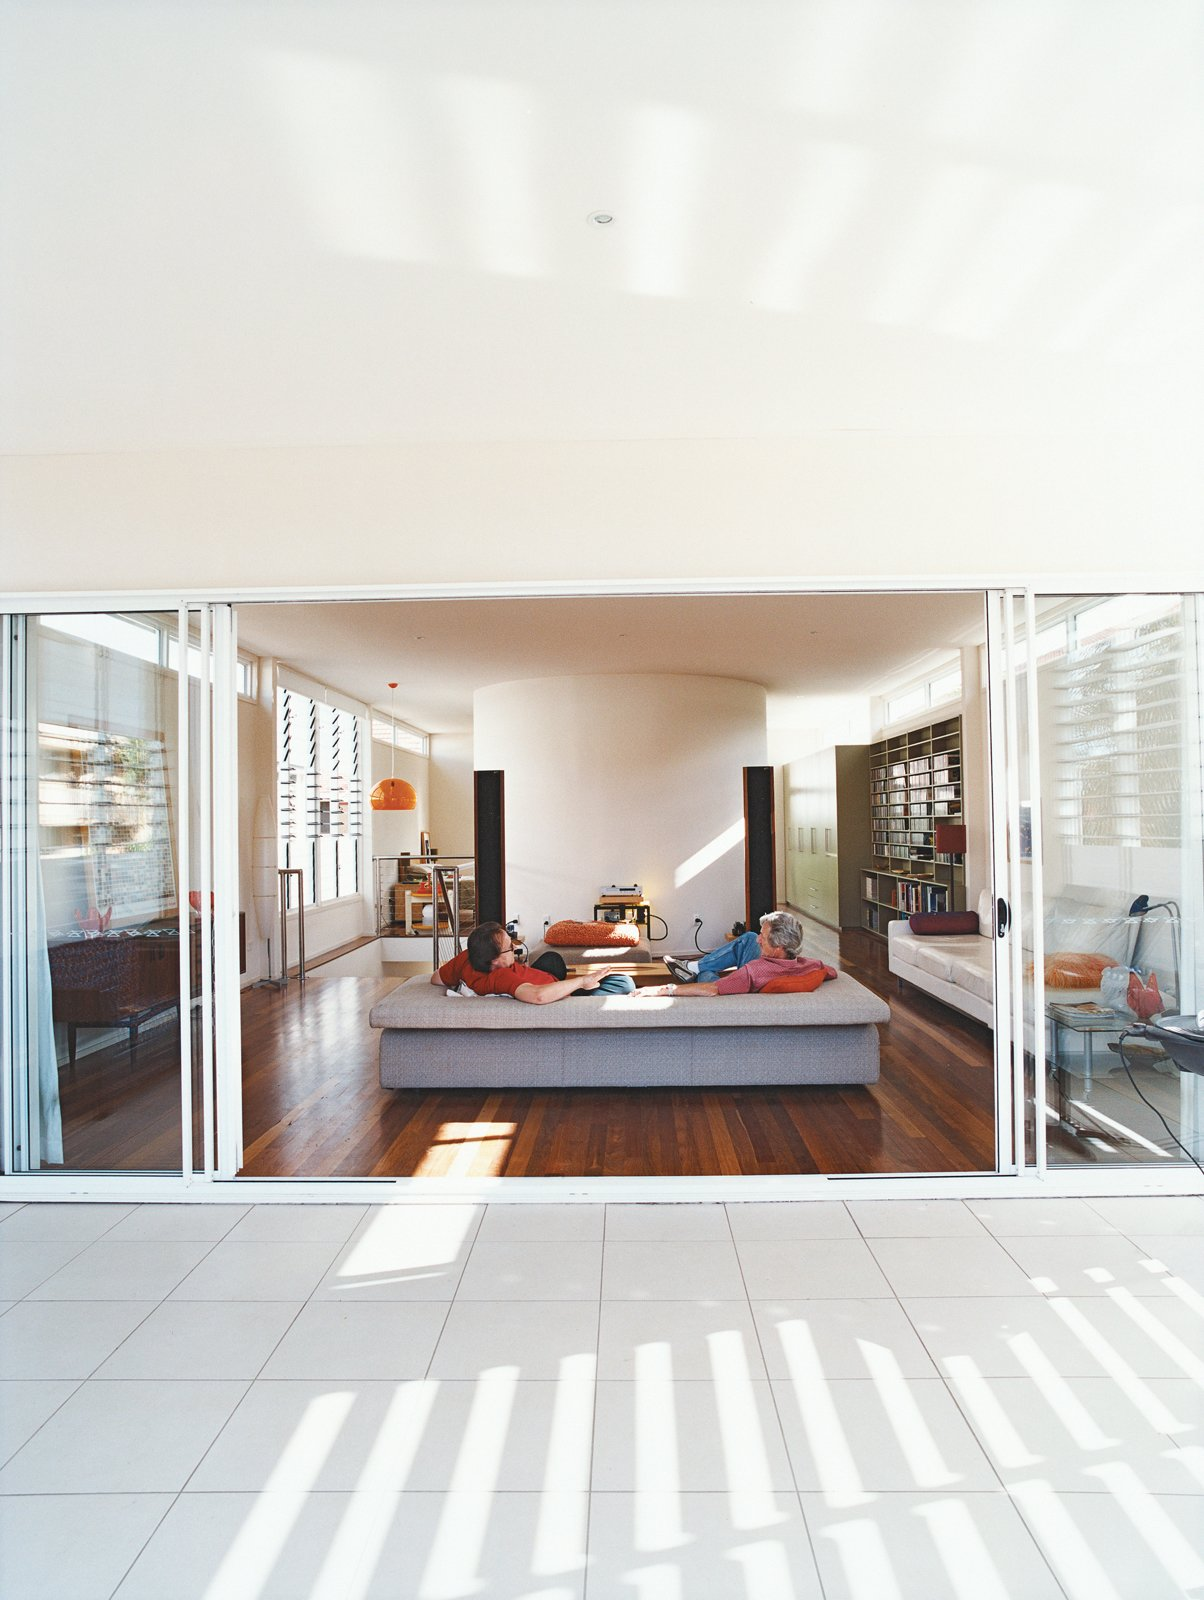 Living Room, Medium Hardwood Floor, and Sofa Clayden and Sam Cutler, both former tour managers for rock bands, talk music in the spacious, uncluttered living room that opens onto the balcony.  Photo 4 of 8 in Minimalist Bachelor Pad in Brisbane